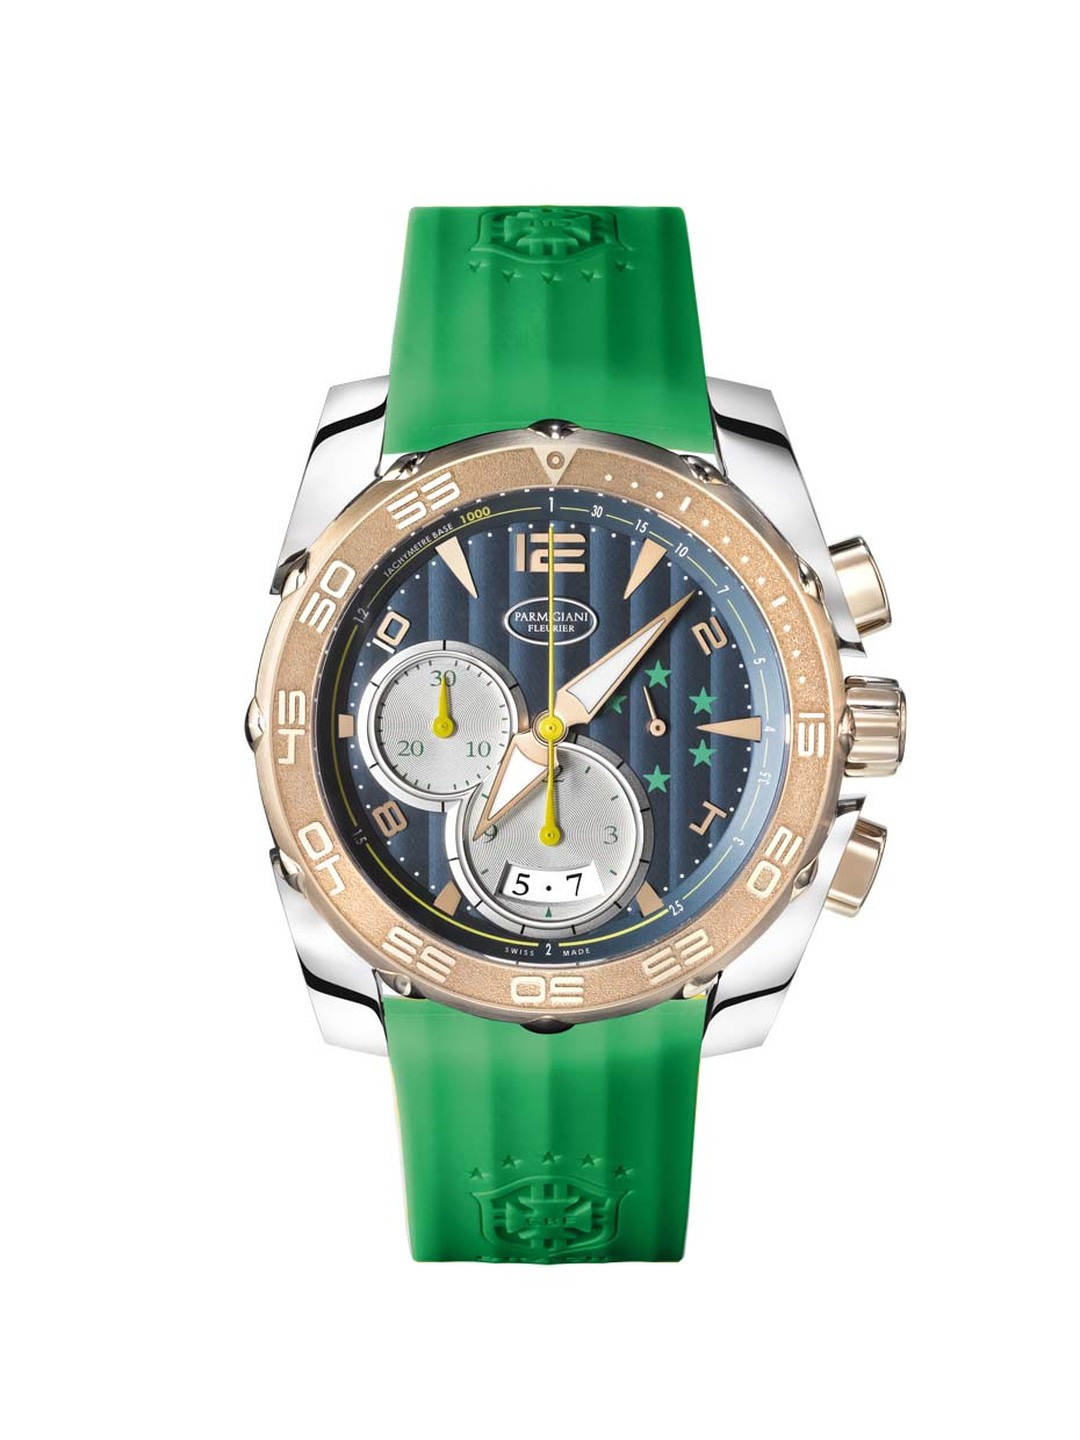 The Parmigiani Fleurier 45mm Pershing CBF chronograph for men celebrates the brand's bond with Brazil and features five green stars at 3 o'clock, which represent Brazil's five World Cup victories.